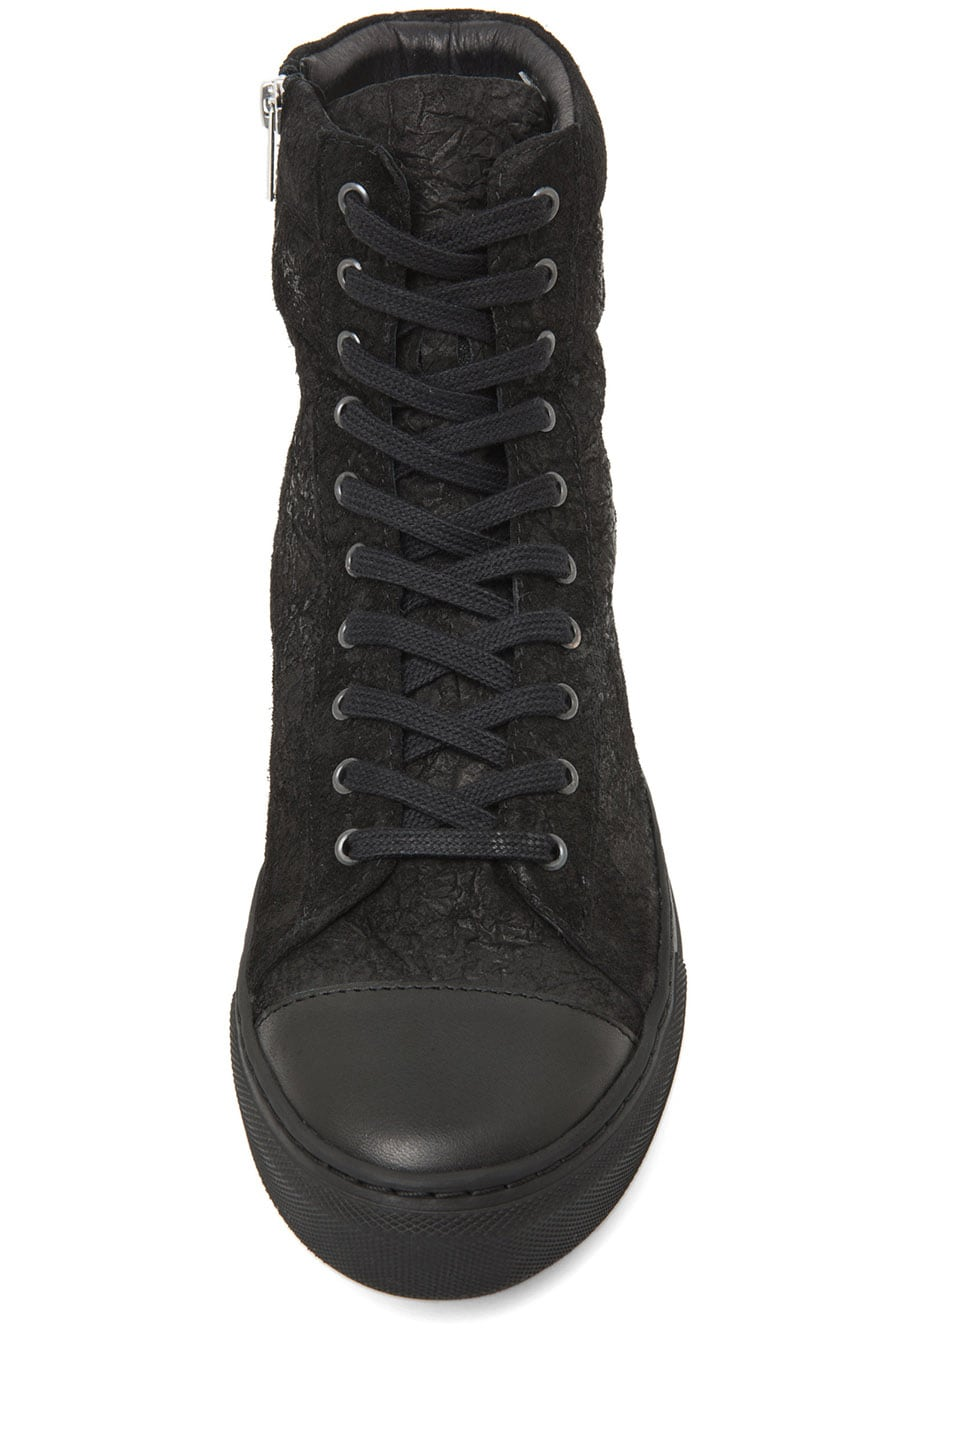 Image 4 of SILENT DAMIR DOMA Satur Leather Sneaker in Black